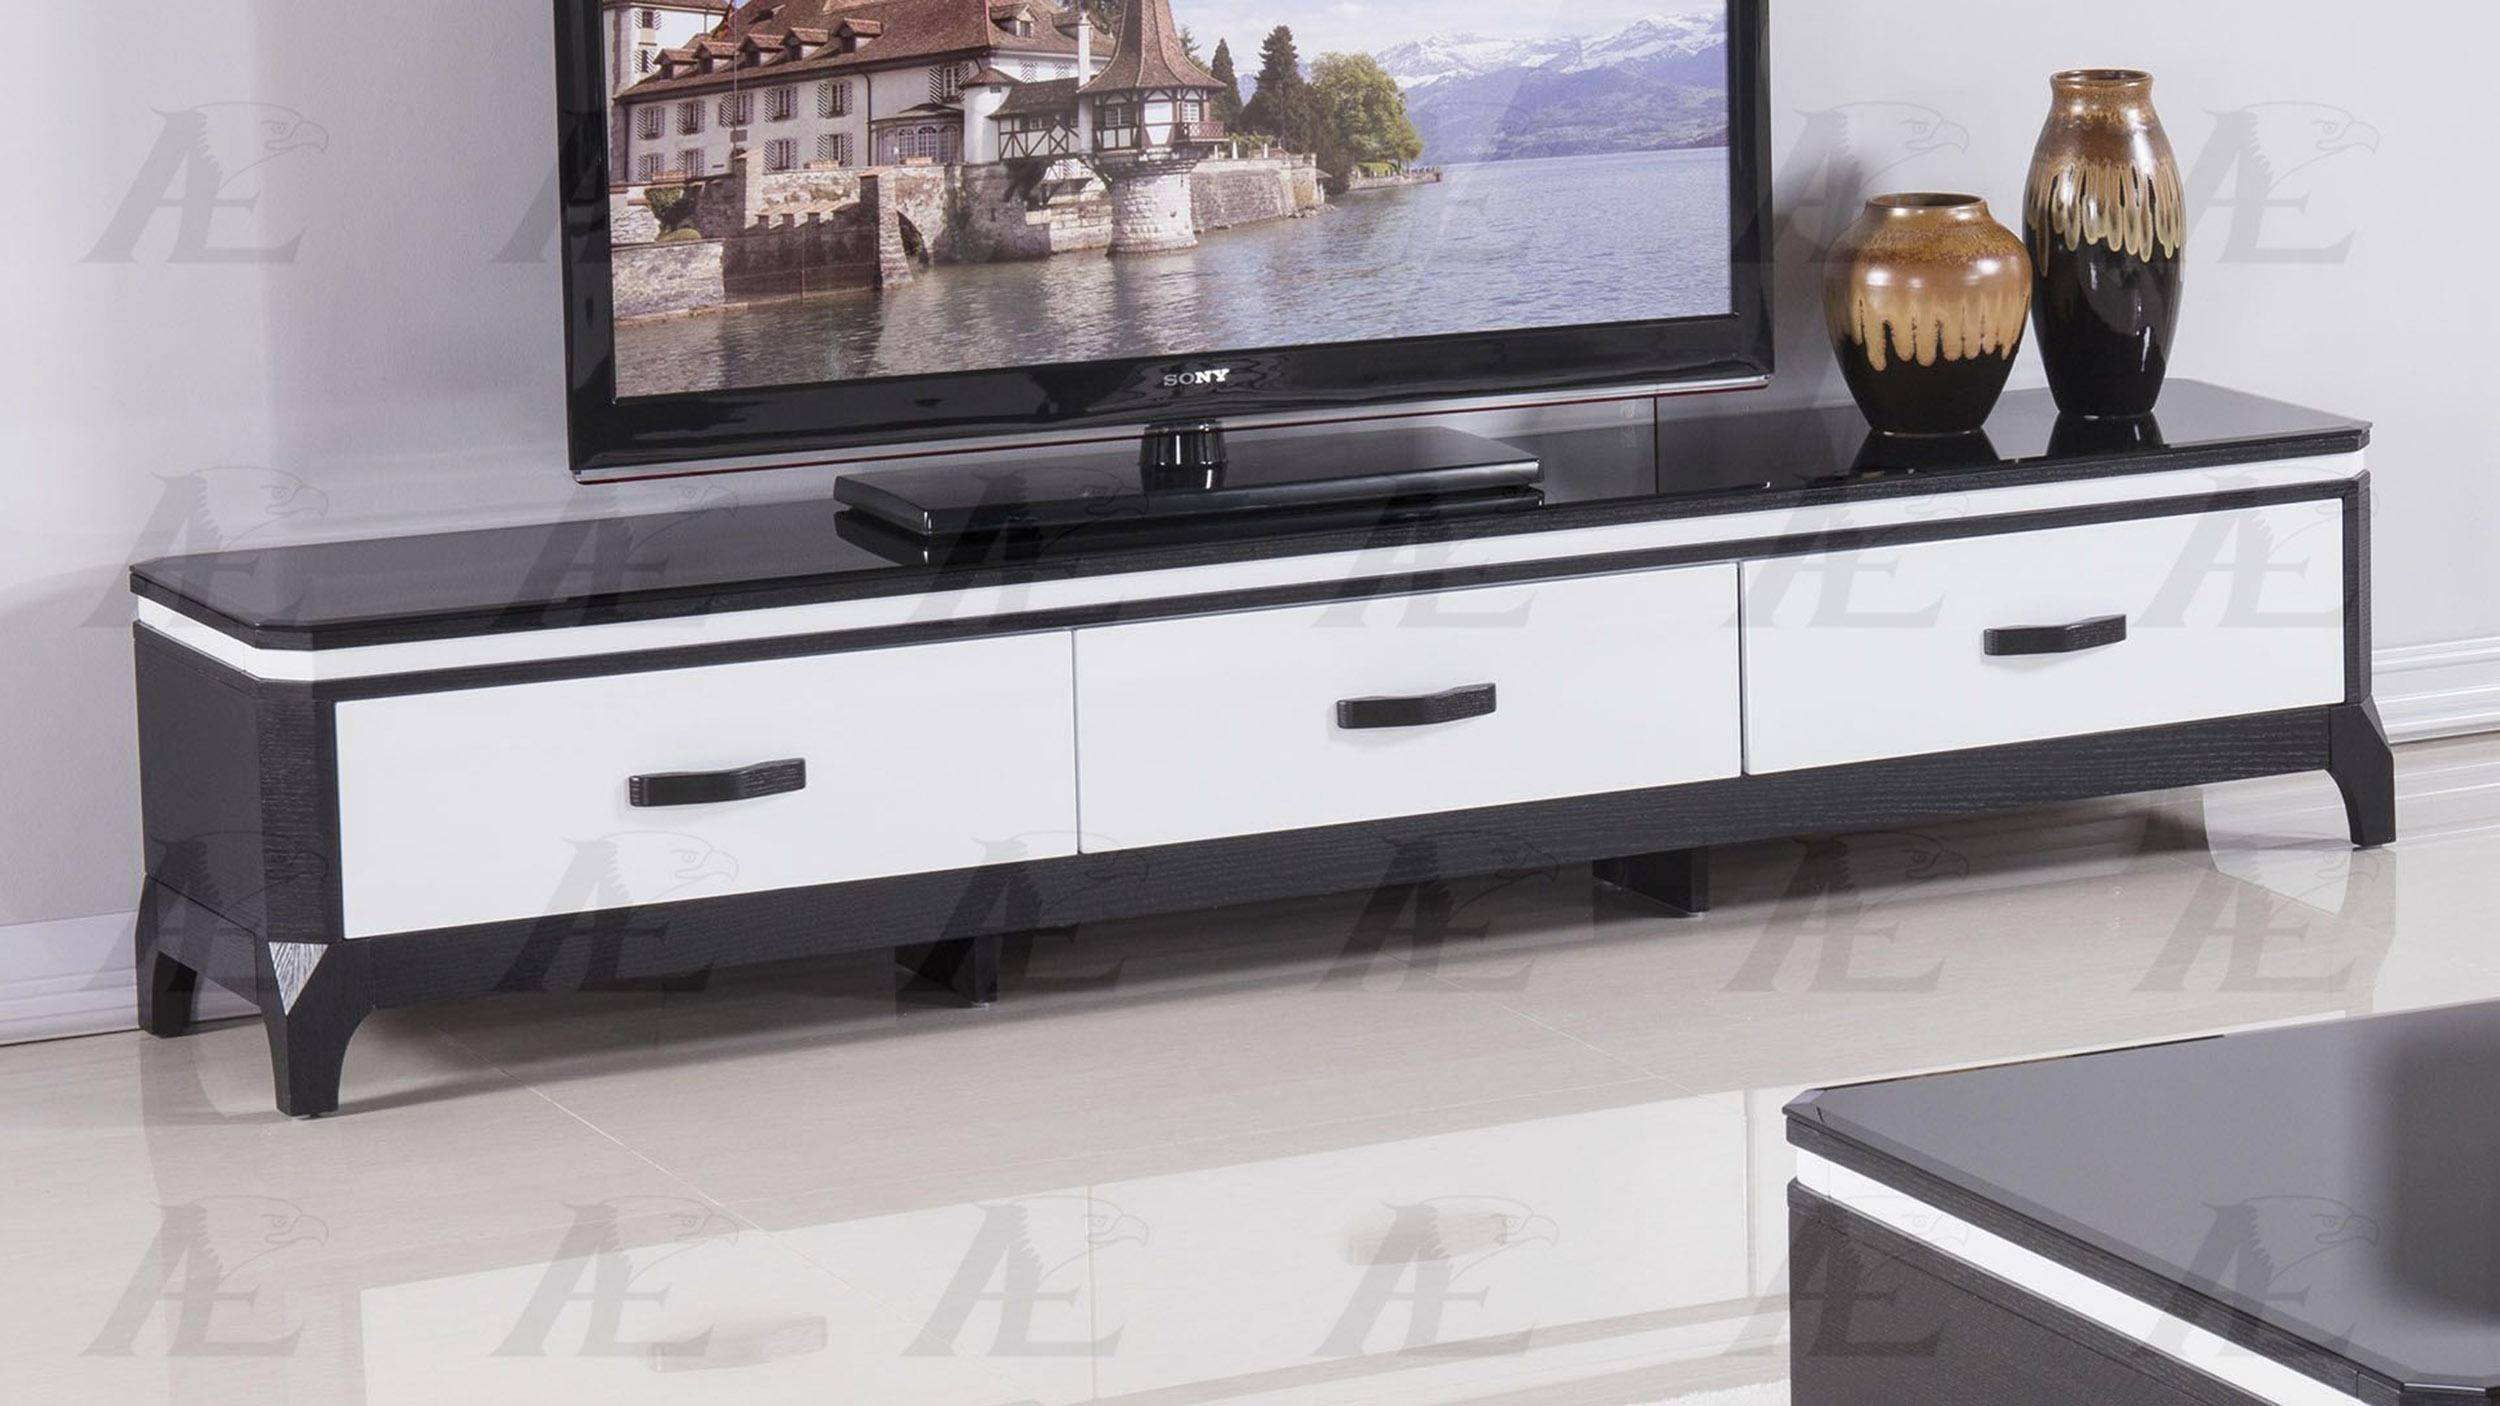 American Eagle Furniture Fc C592 Black And White Tempered Gl Top Tv Stand Reviews